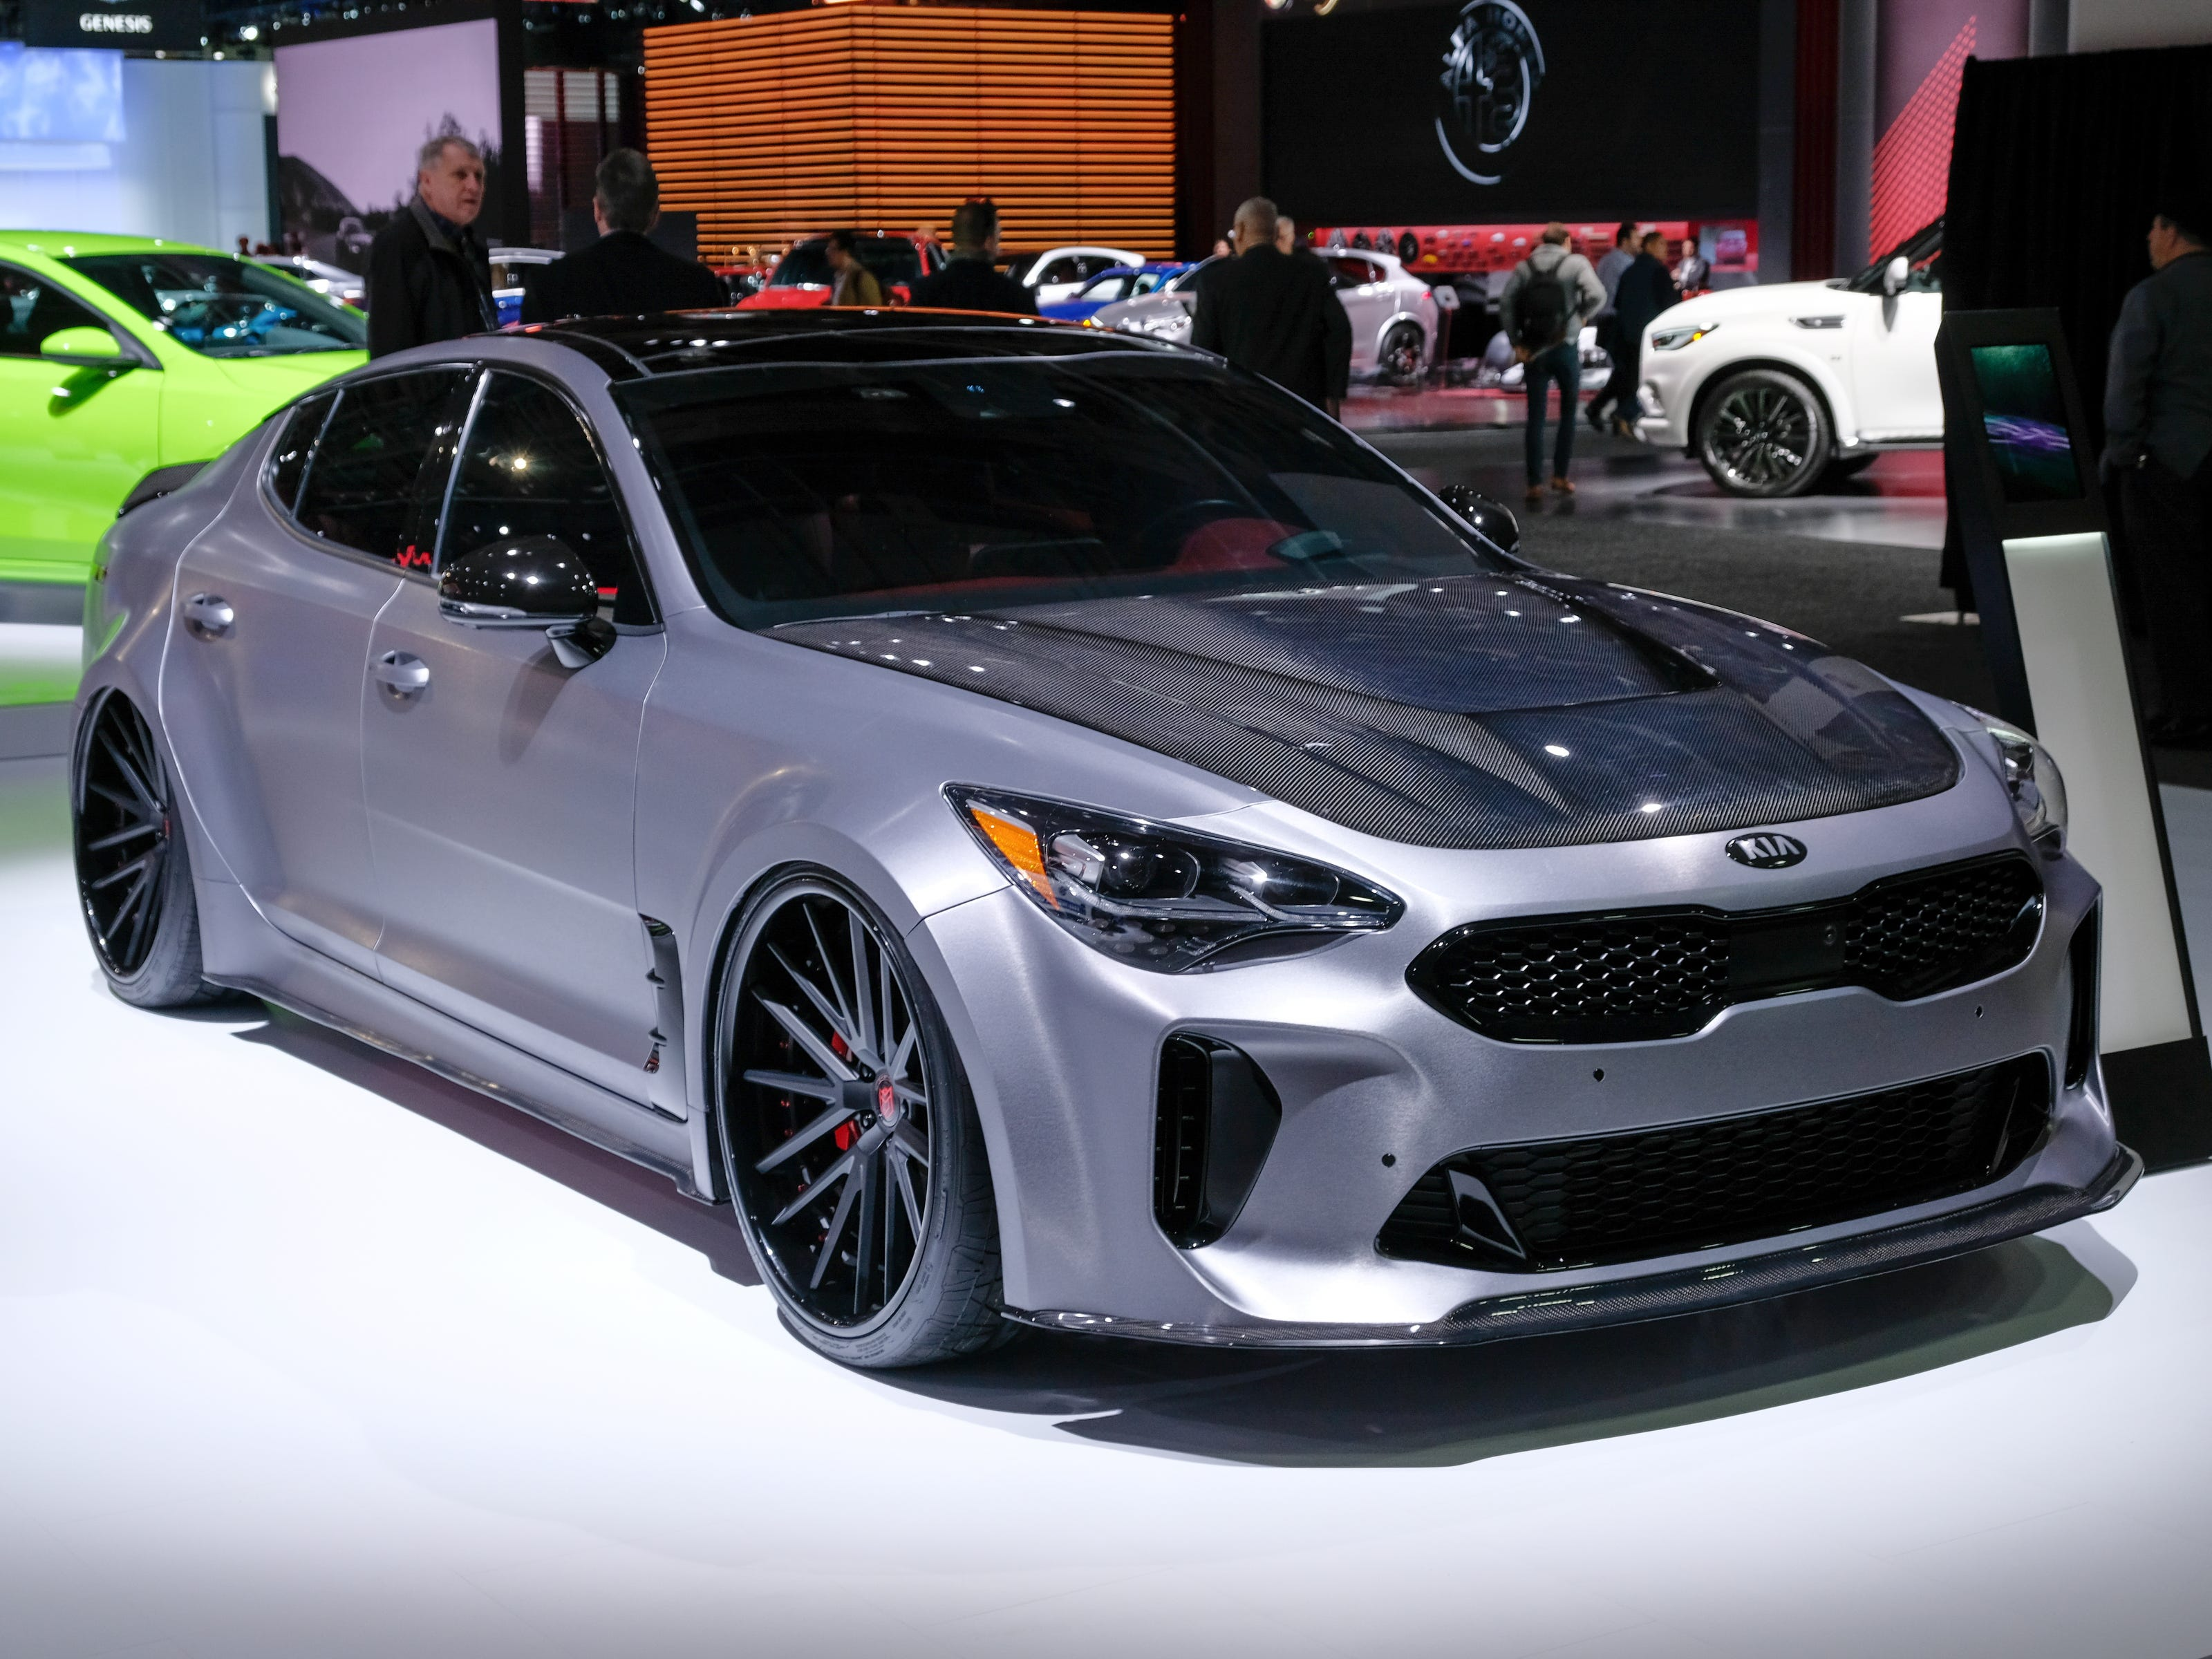 A 2019 Kia DUB Stinger is seen on display during the 2019 North American International Auto Show held at Cobo Center in downtown Detroit on Tuesday, Jan. 15, 2019.  (Via OlyDrop)